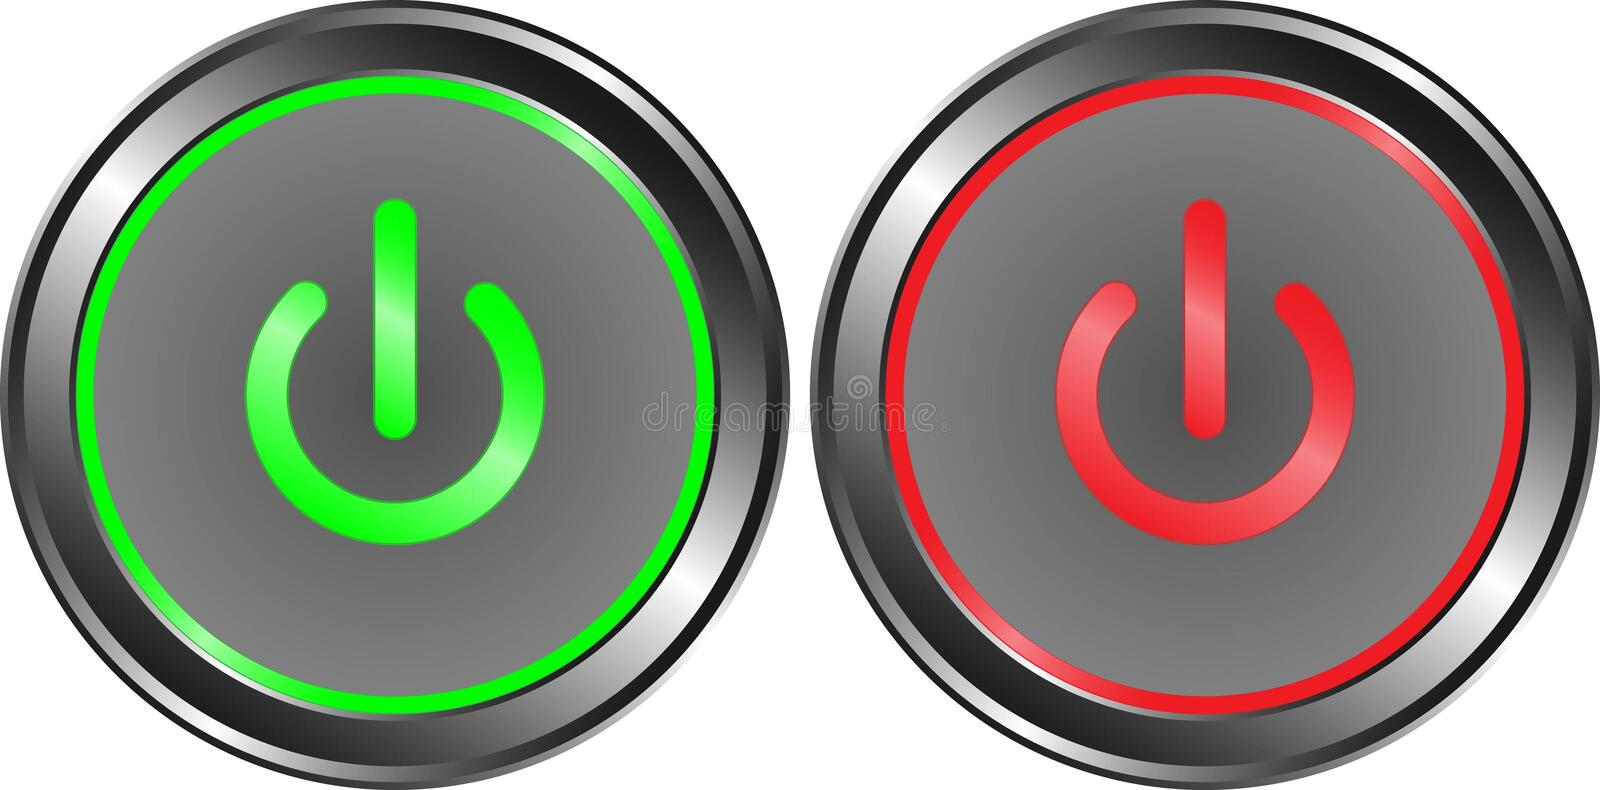 Power on  green and power off red button metal vector illustration